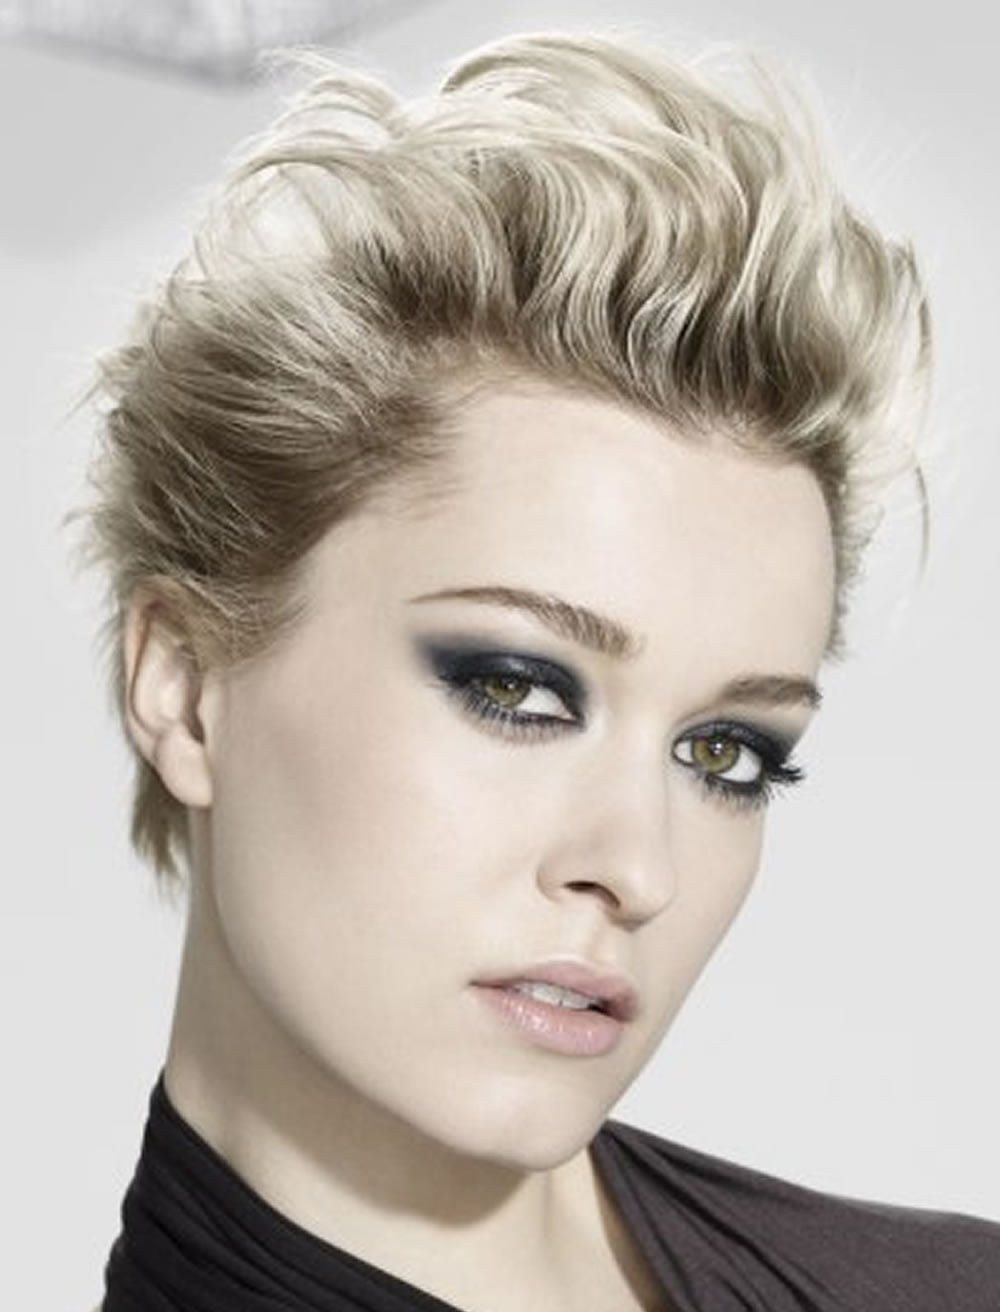 Womens Hairstyles: Top 32 Short Haircuts & Hairstyle Ideas For Women